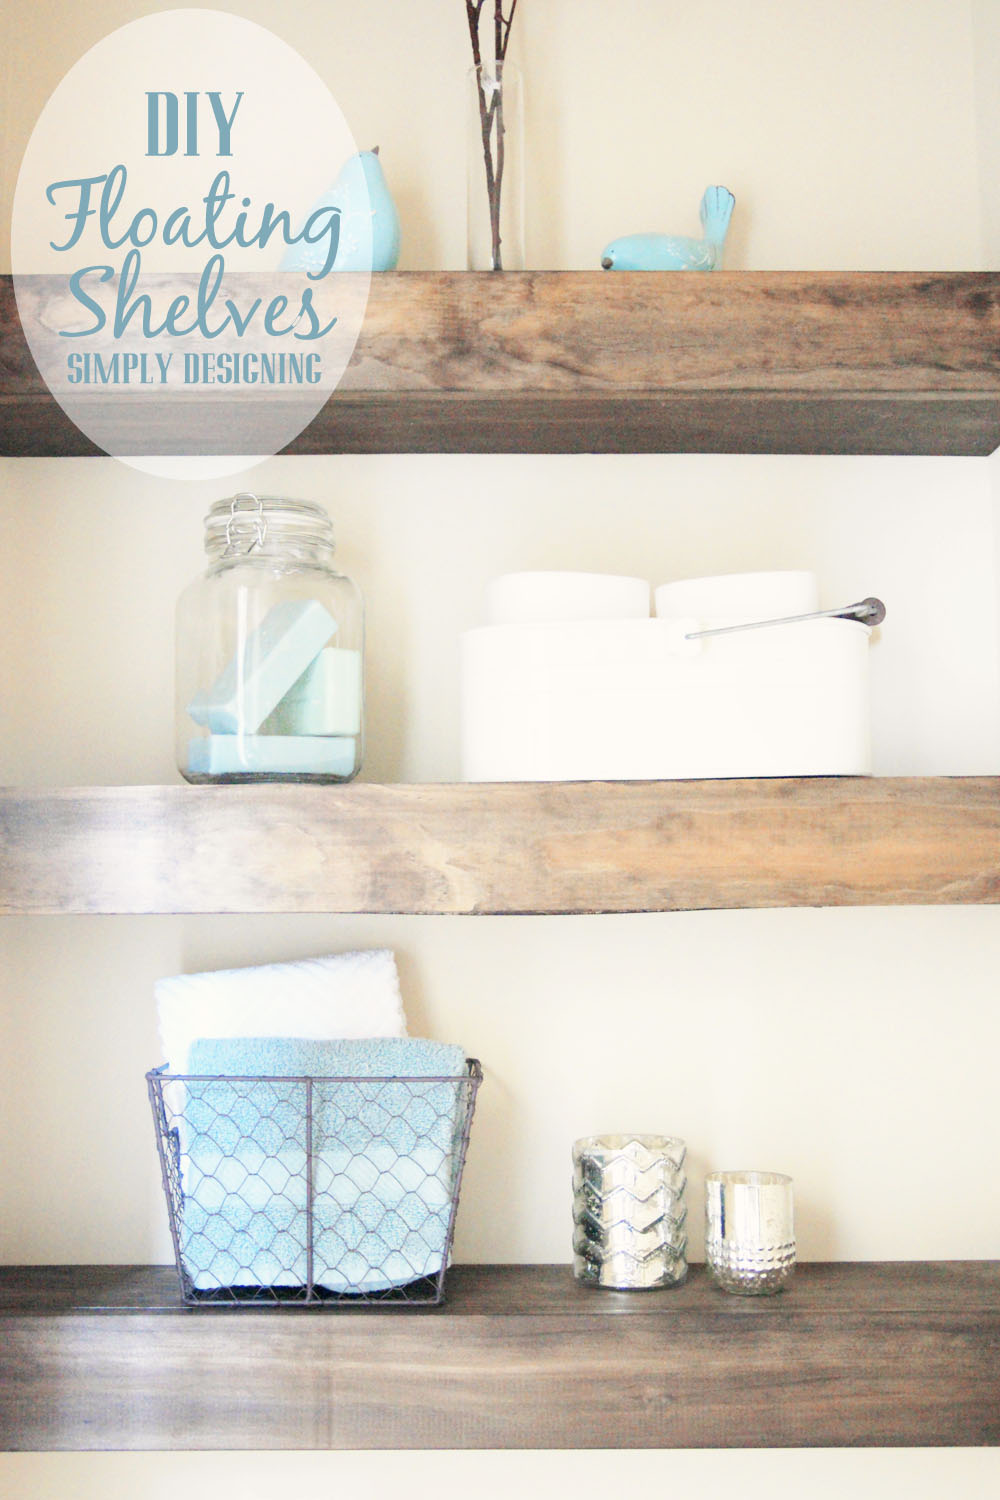 Book Of Floating Shelves Bathroom Diy In Singapore By Olivia ...